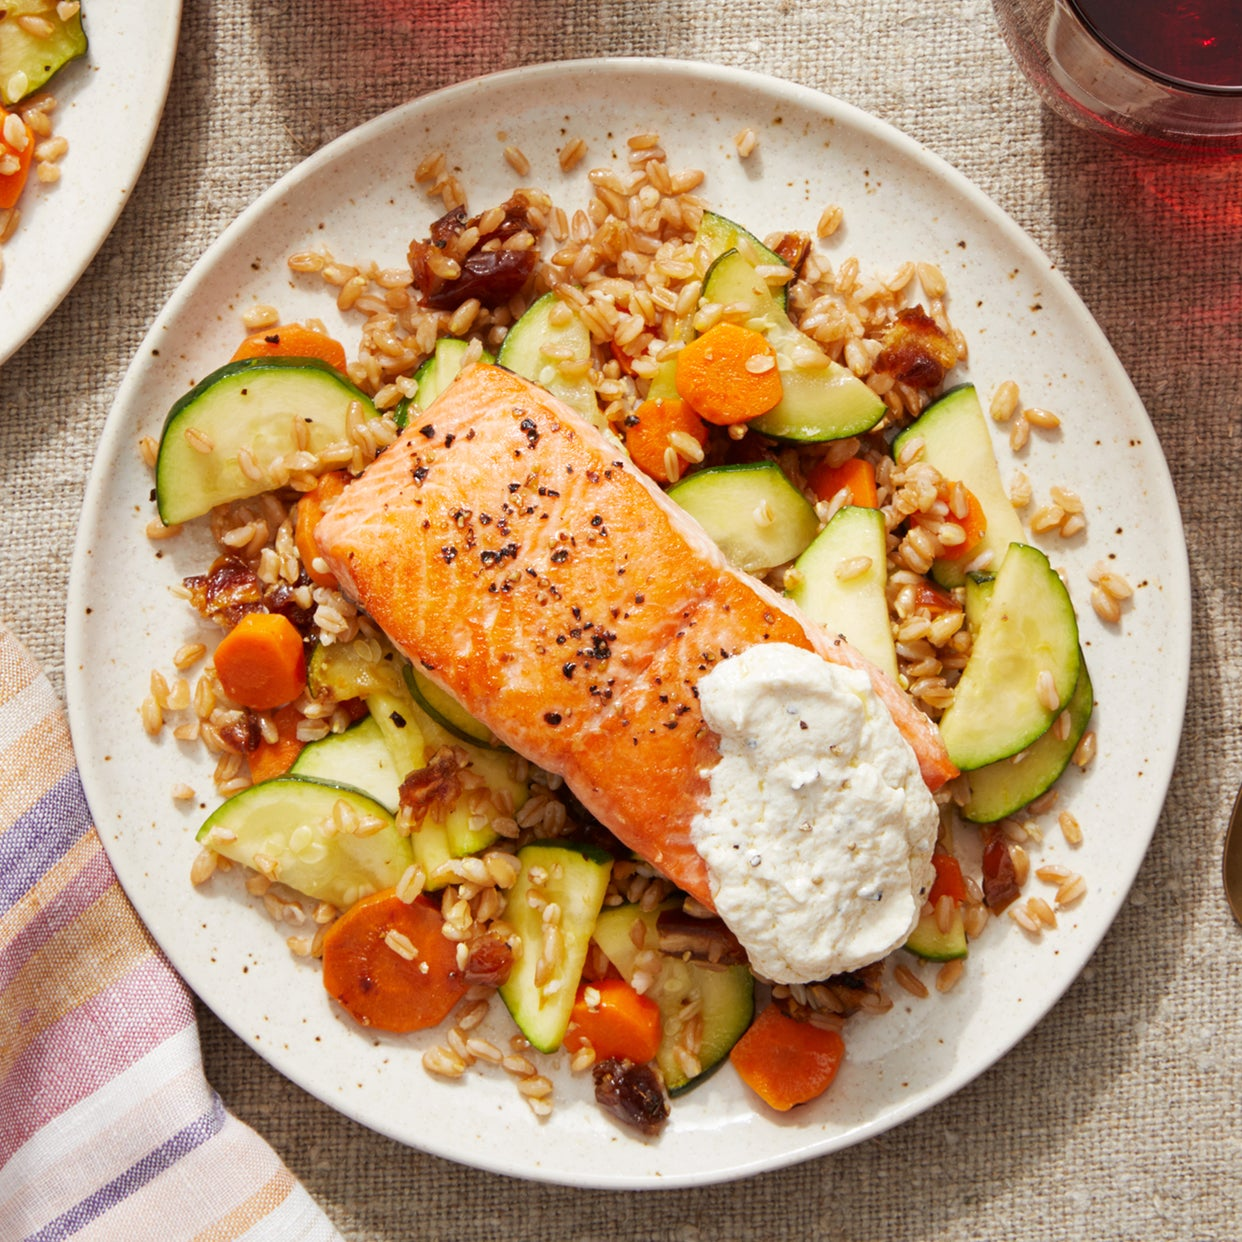 Seared Salmon over Farro with Dates, Zucchini,  & Garlic Labneh